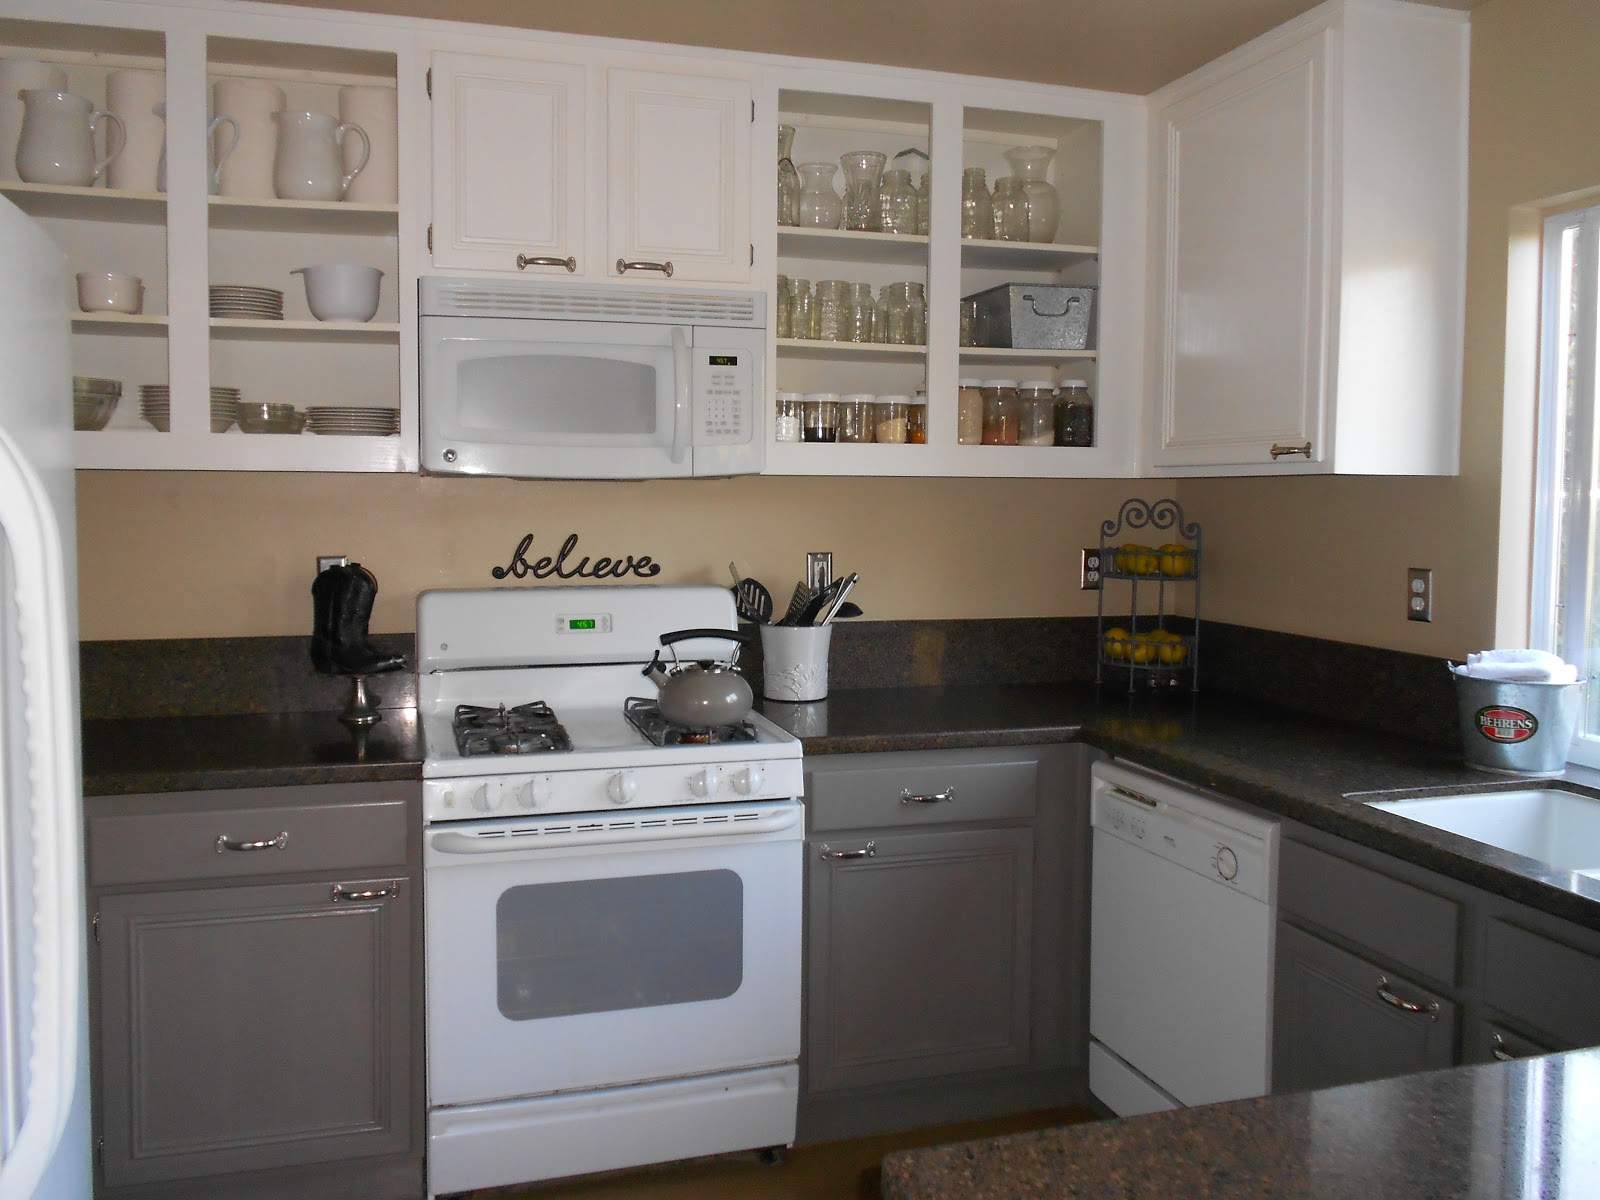 ... White Painted Kitchen Cabinets Before After